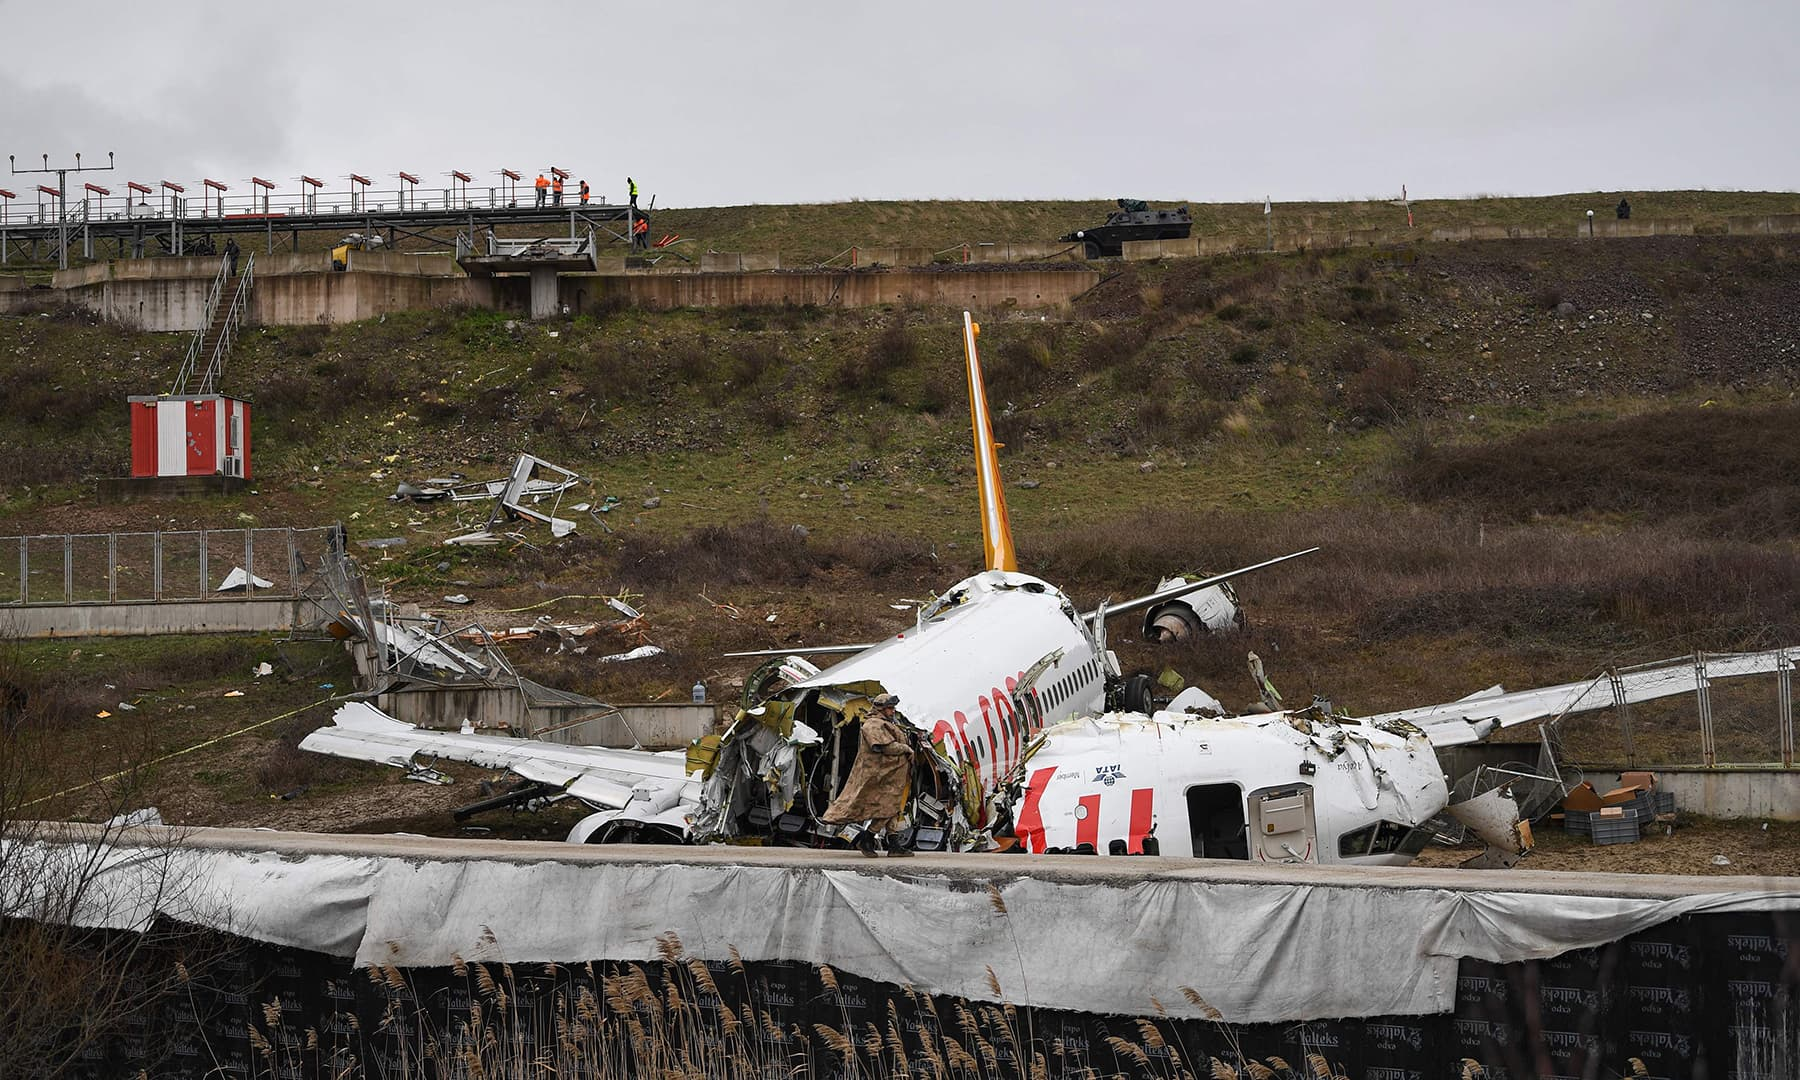 A Turkish soldier stands guard at the site after a Pegasus Airlines Boeing 737 airplane skidded off the runway upon landing at the Sabiha Gokcen airport in Istanbul on Feb 6. — AFP